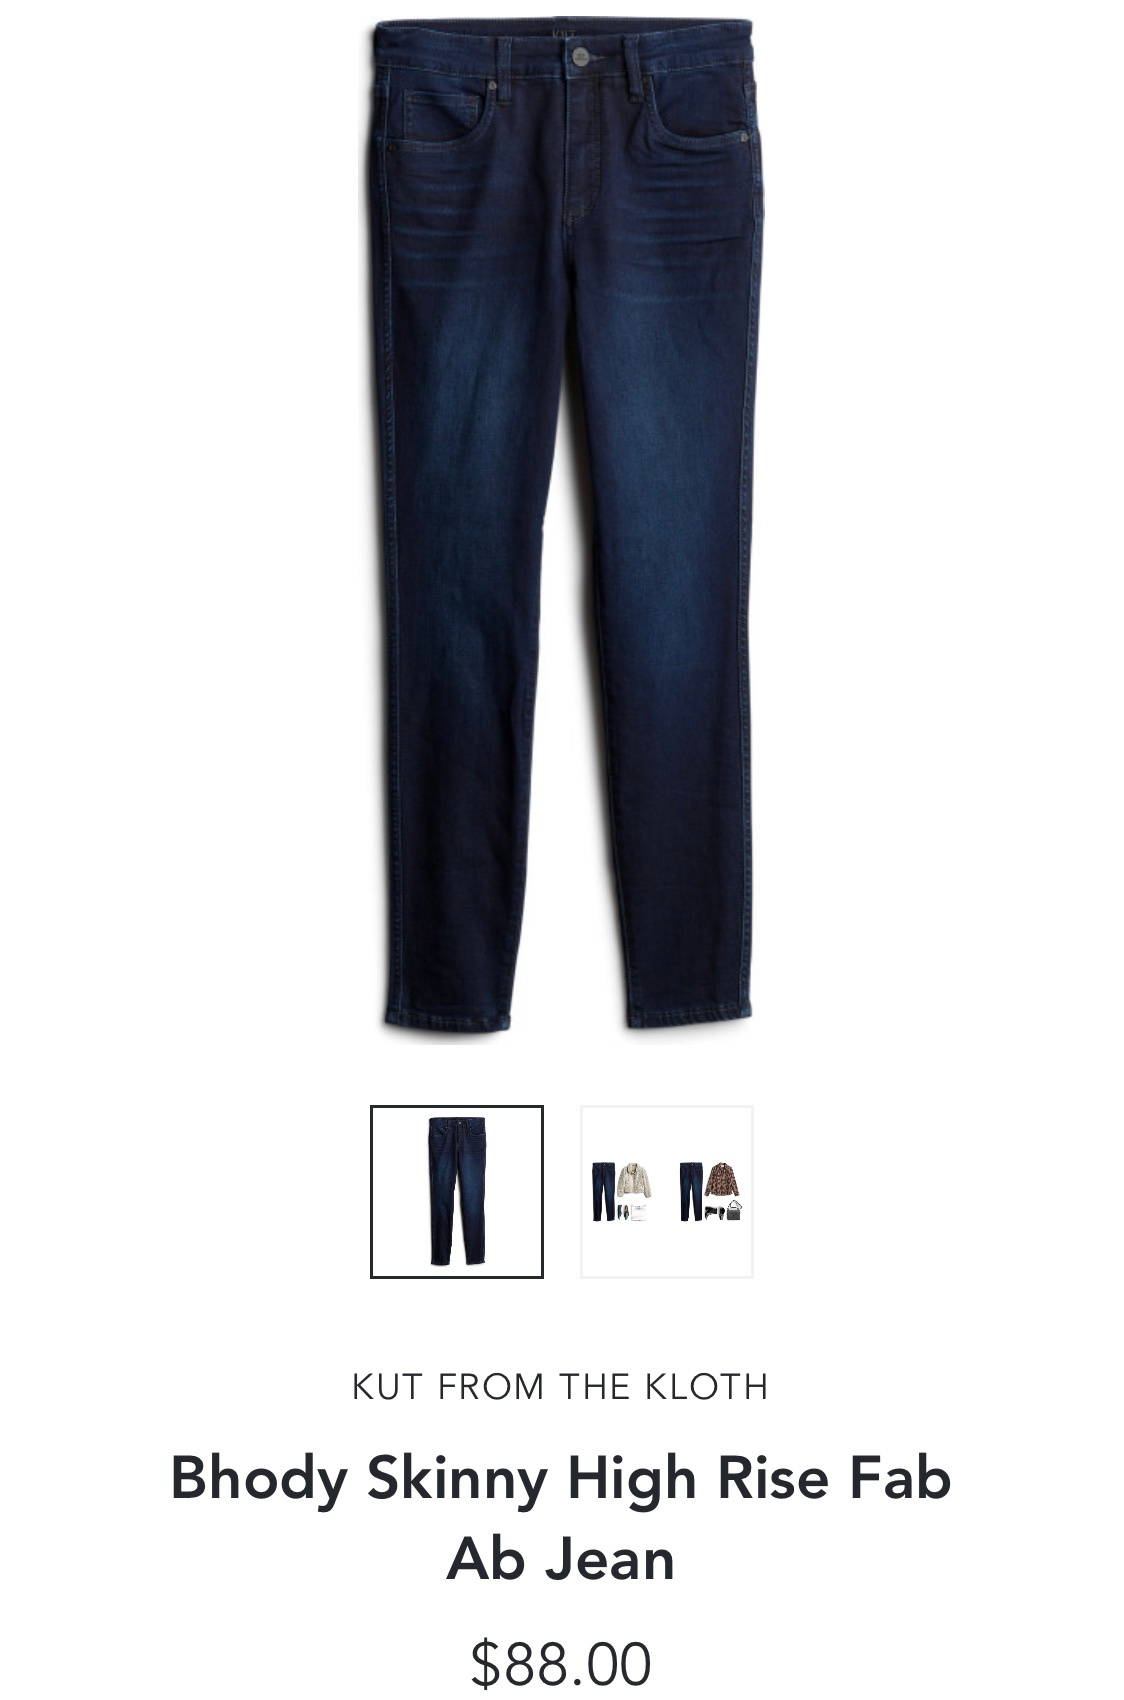 Kut from the Kloth Bhody Skinny High Rise Fab Ab Jean